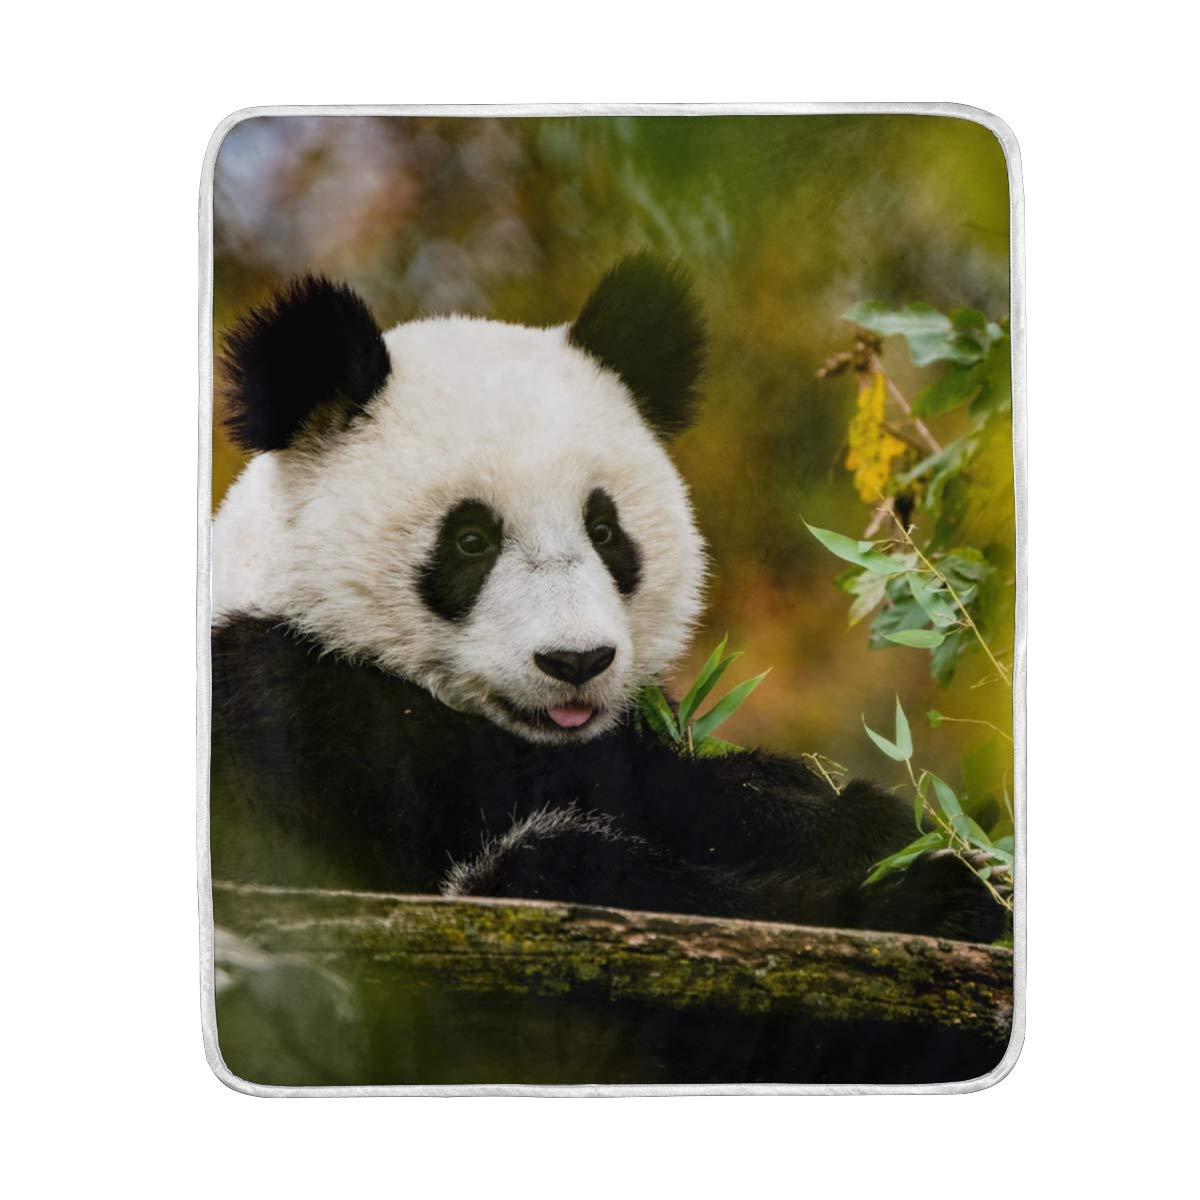 Seasonal Quilt Funny Animal Panda Putting His Tongue Out Crystal Velvet Throw Blanket for Bed 50 x 60 inch Kids Baby Girls Colorful Painting Couch Blanket Throw Decor